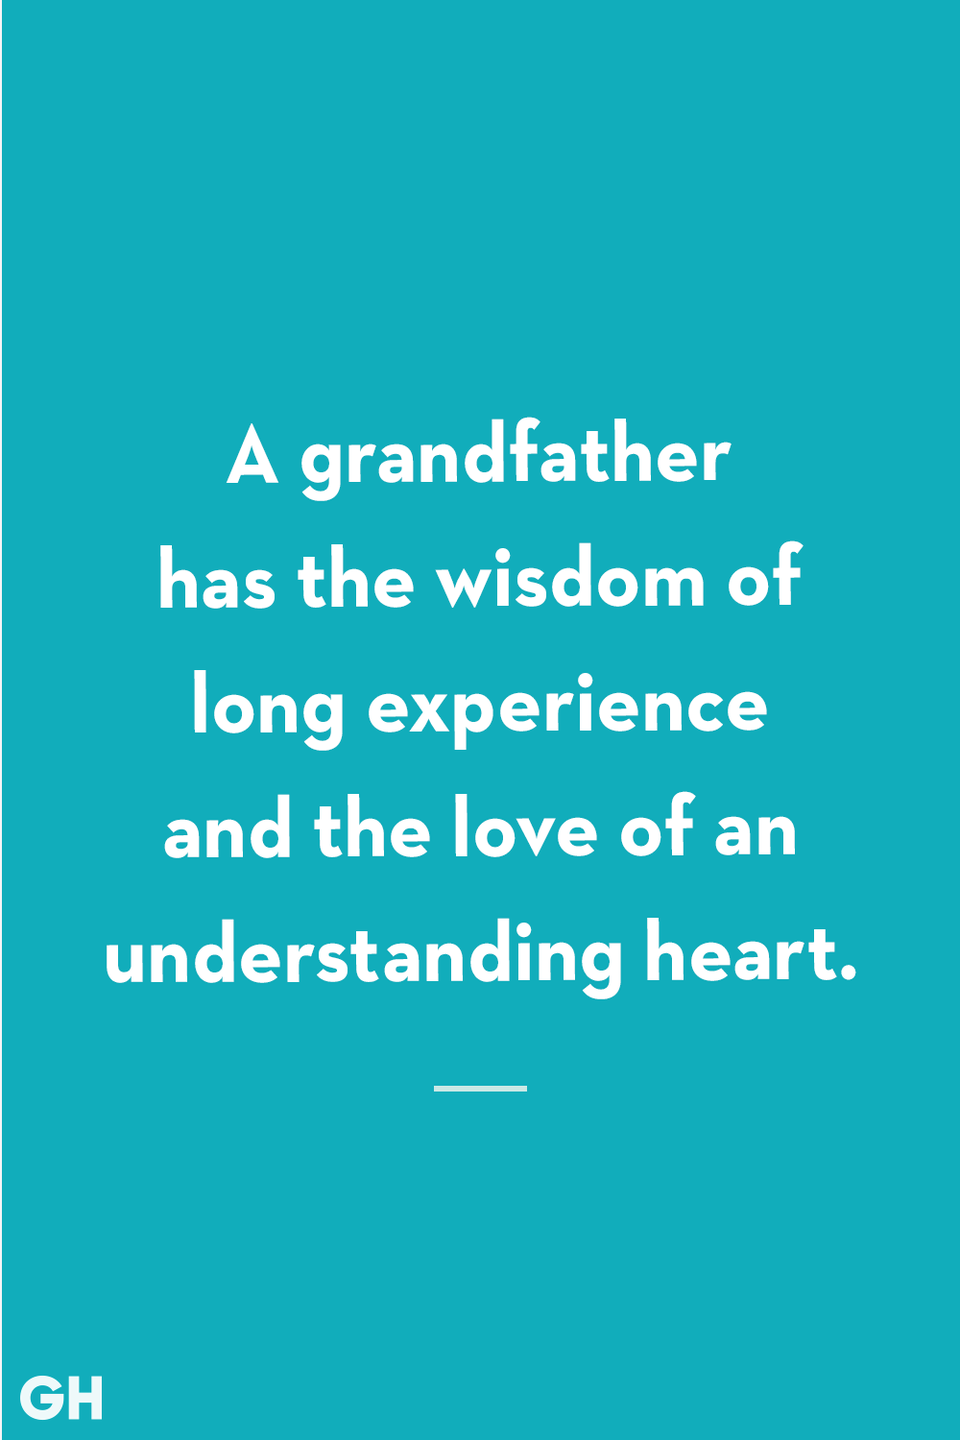 <p>A grandfather has the wisdom of long experience and the love of an understanding heart.</p>